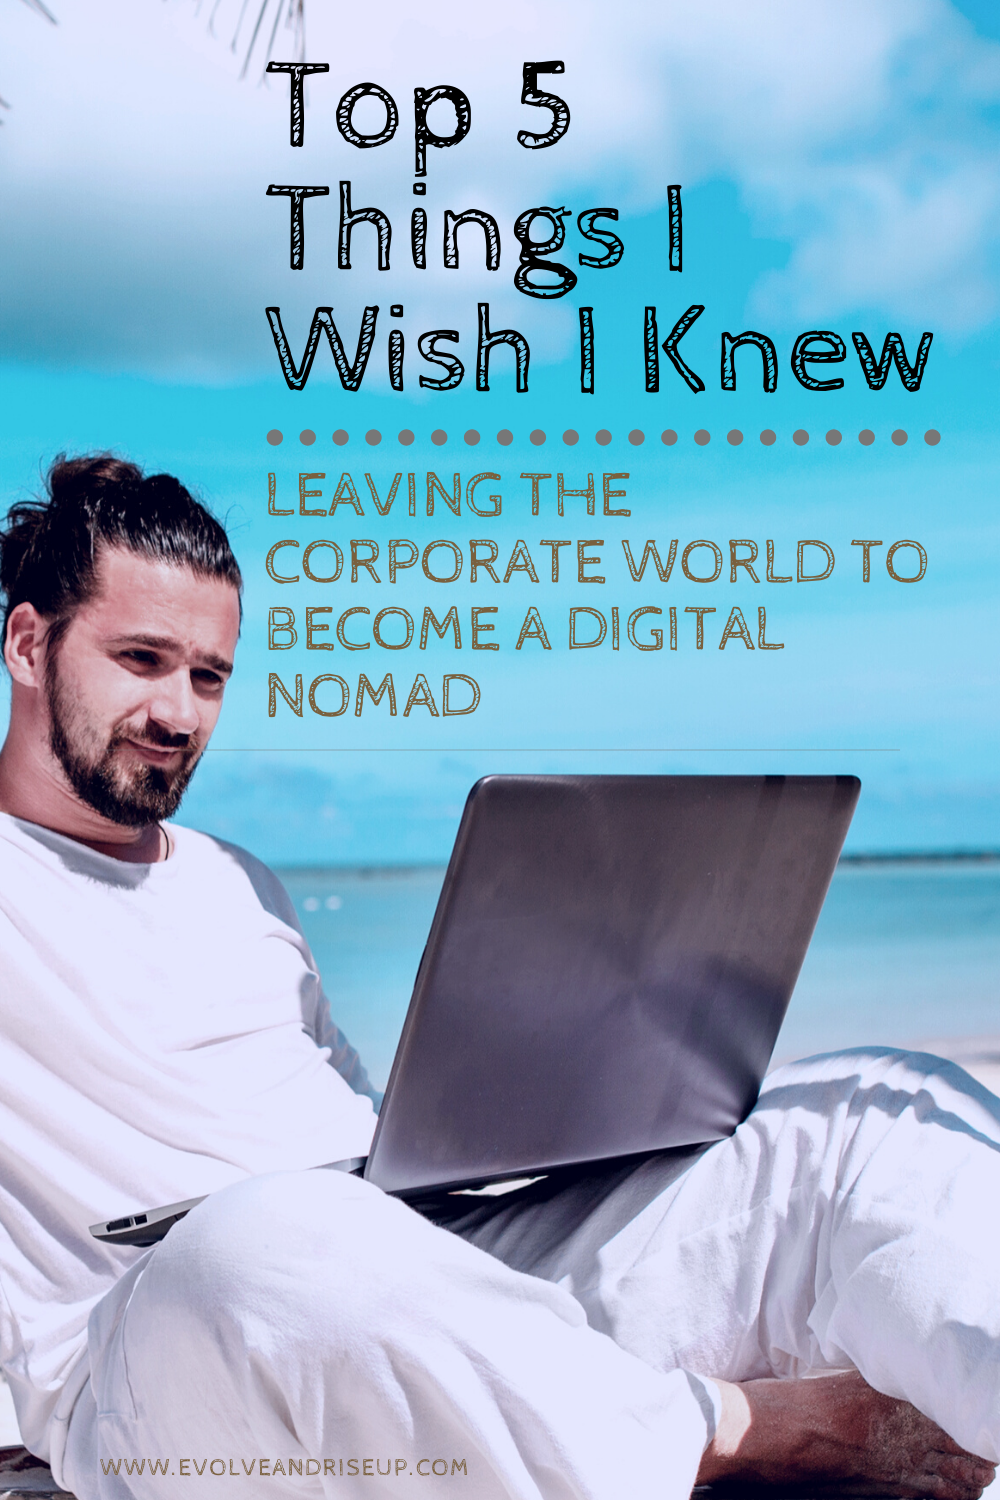 top 5 things I wish I knew leaving the corporate world to become a digital nomad - evolve and rise up. Stacy Laine Business and Life Mindset Coach